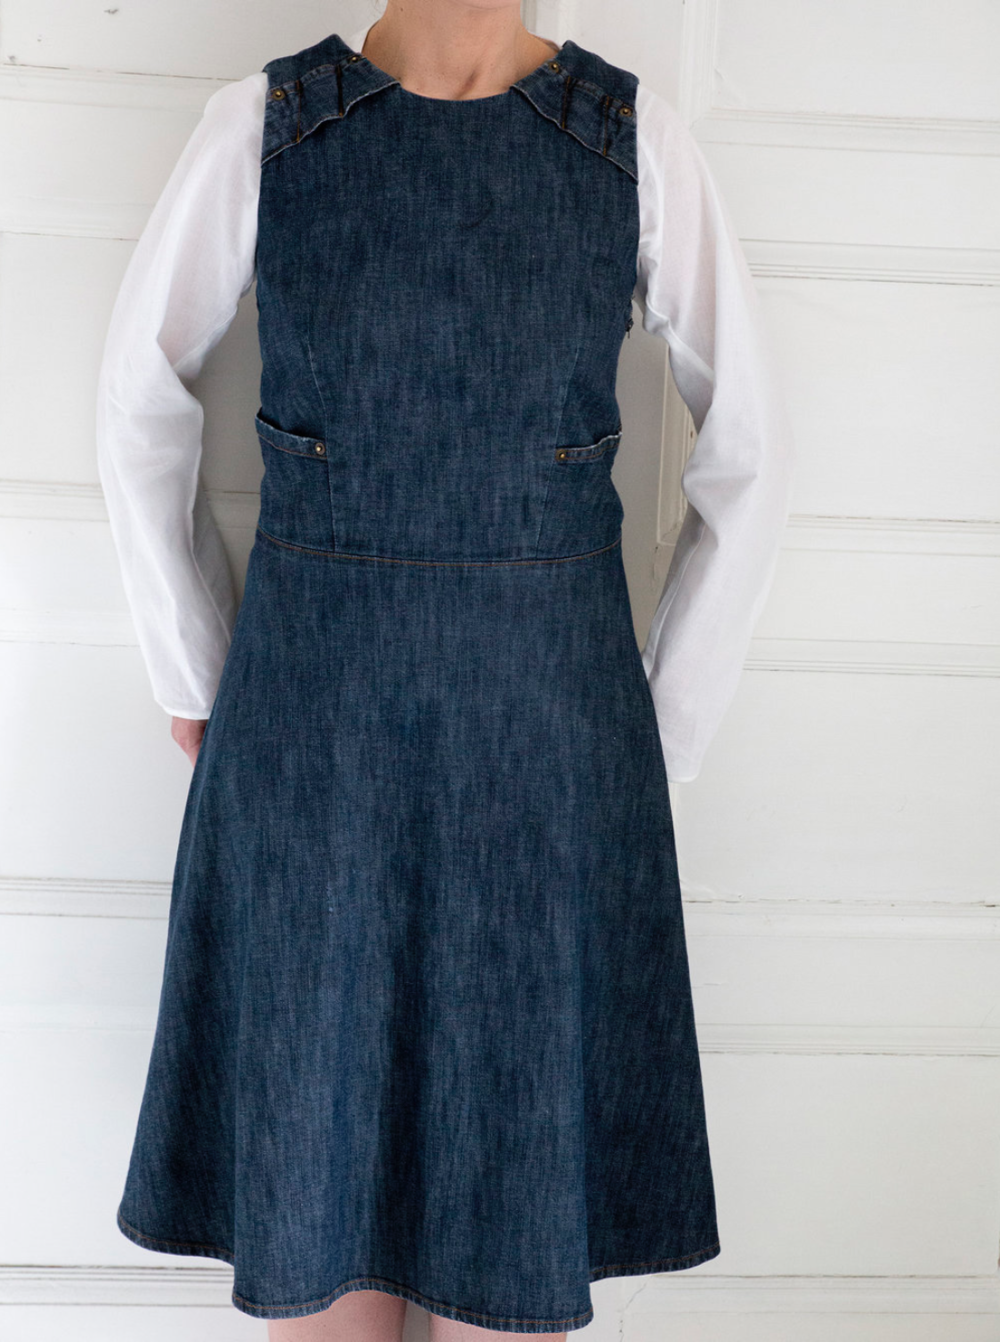 Hanna dress  Hanna dress is made of stretch cotton denim. Dress with a zip on a side has small pockets on both sides.